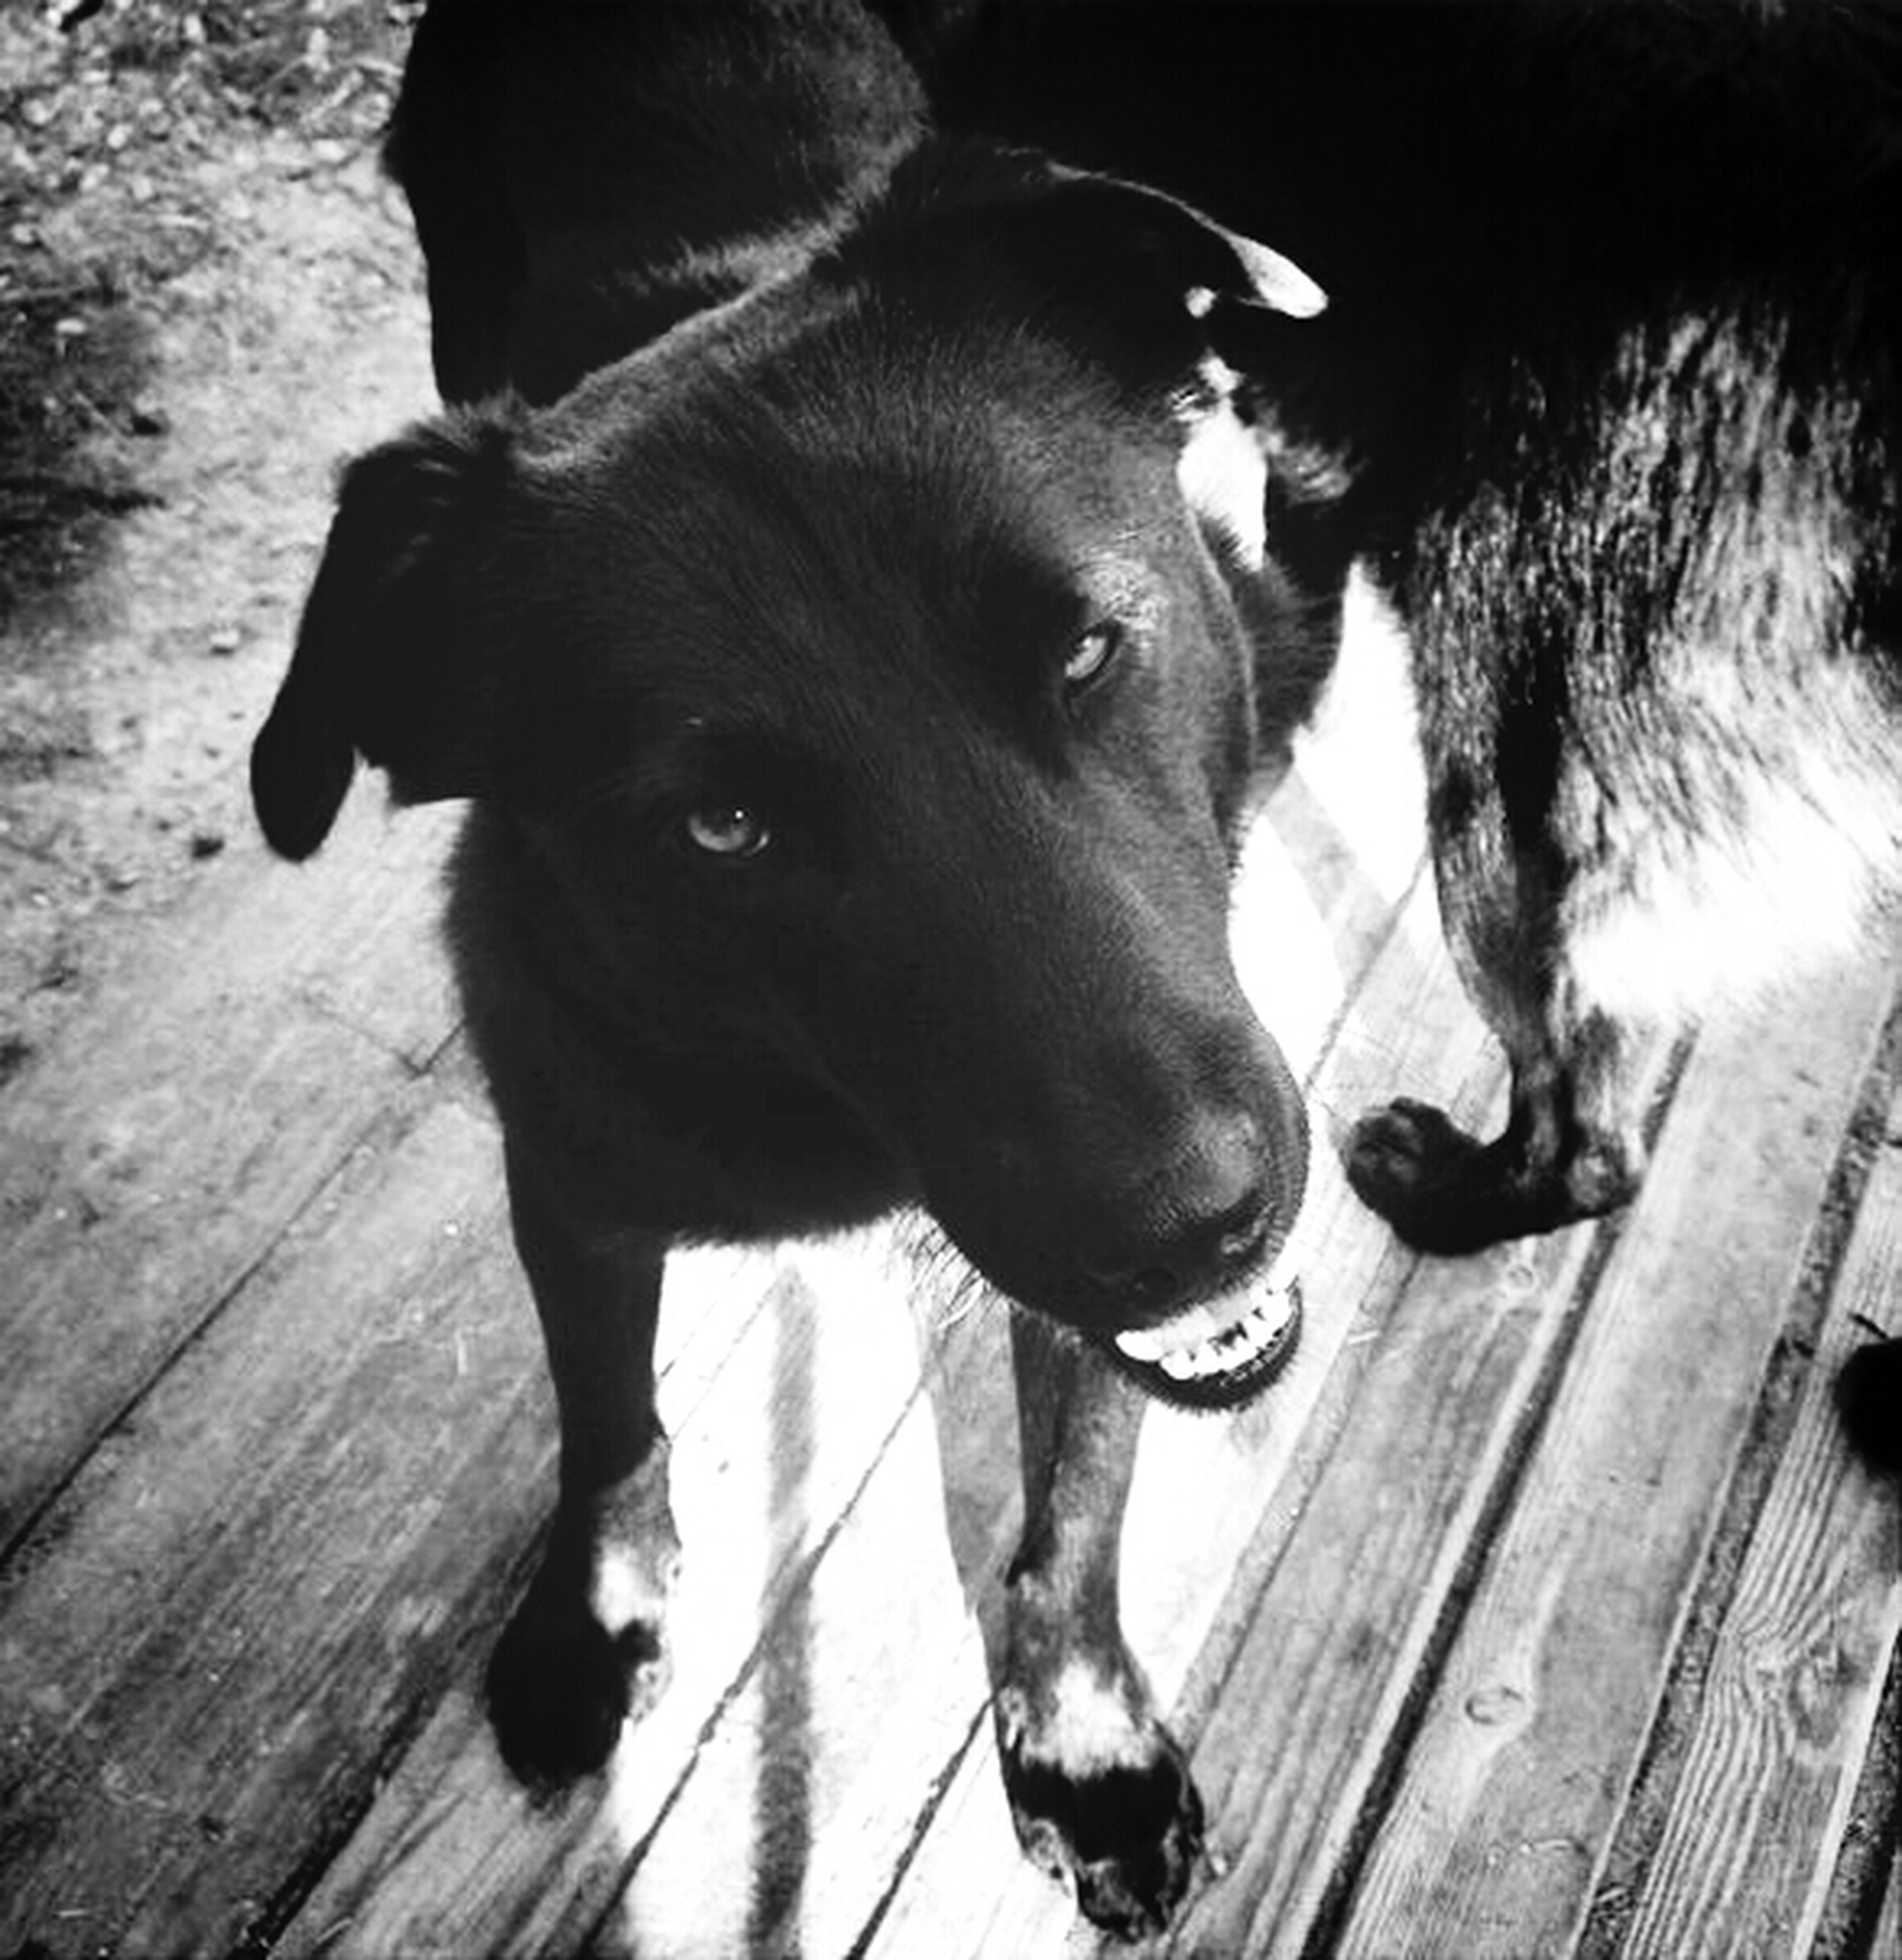 pets, domestic animals, animal themes, mammal, one animal, dog, black color, looking at camera, indoors, portrait, two animals, pet collar, high angle view, no people, zoology, standing, young animal, relaxation, black, sitting